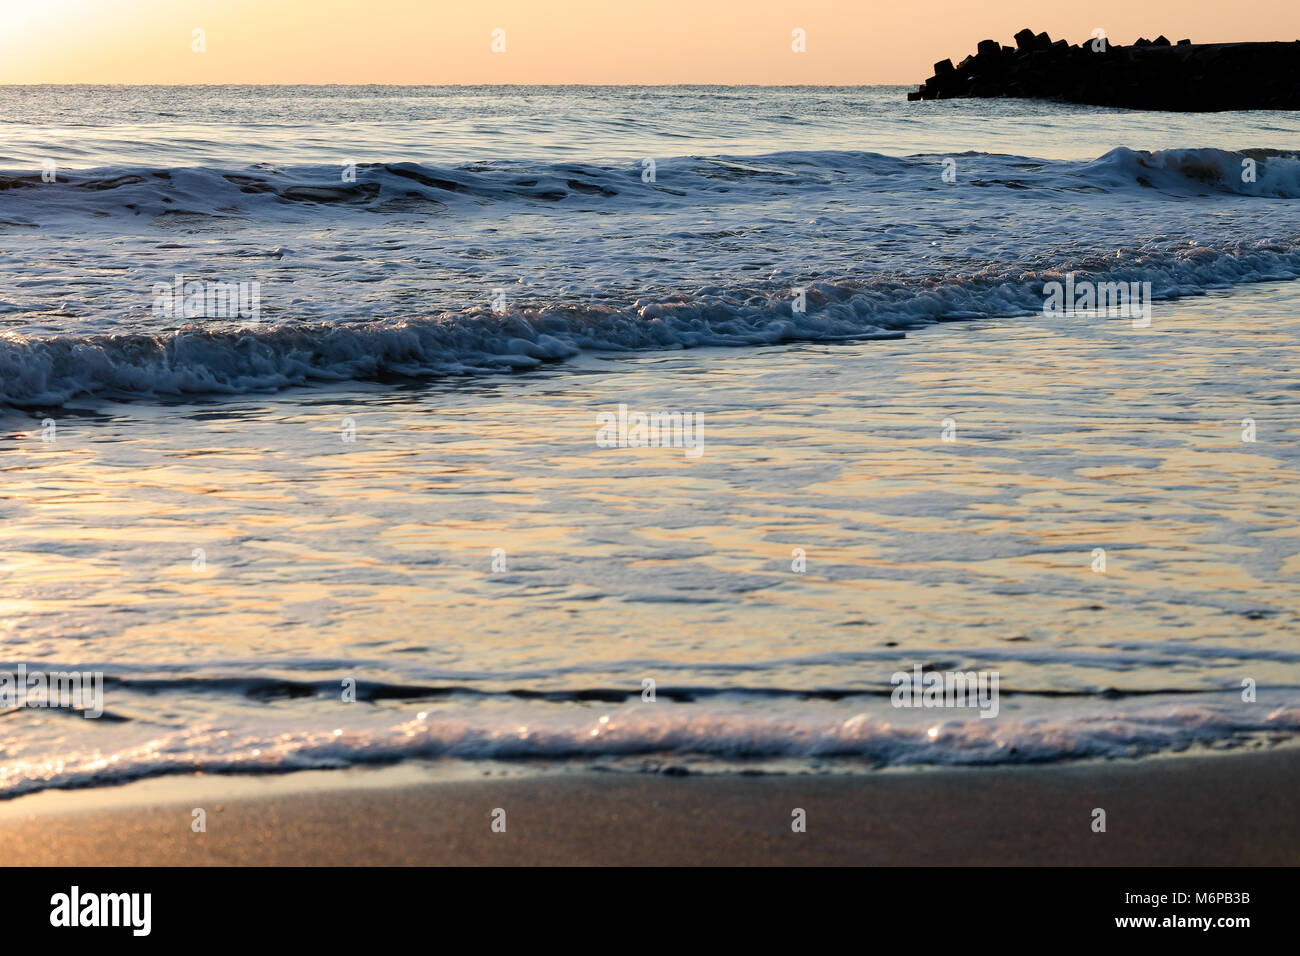 Brightly lit seascape background with golden colored gentle breaking sea waves lapping on the beach at sunrise - Stock Image